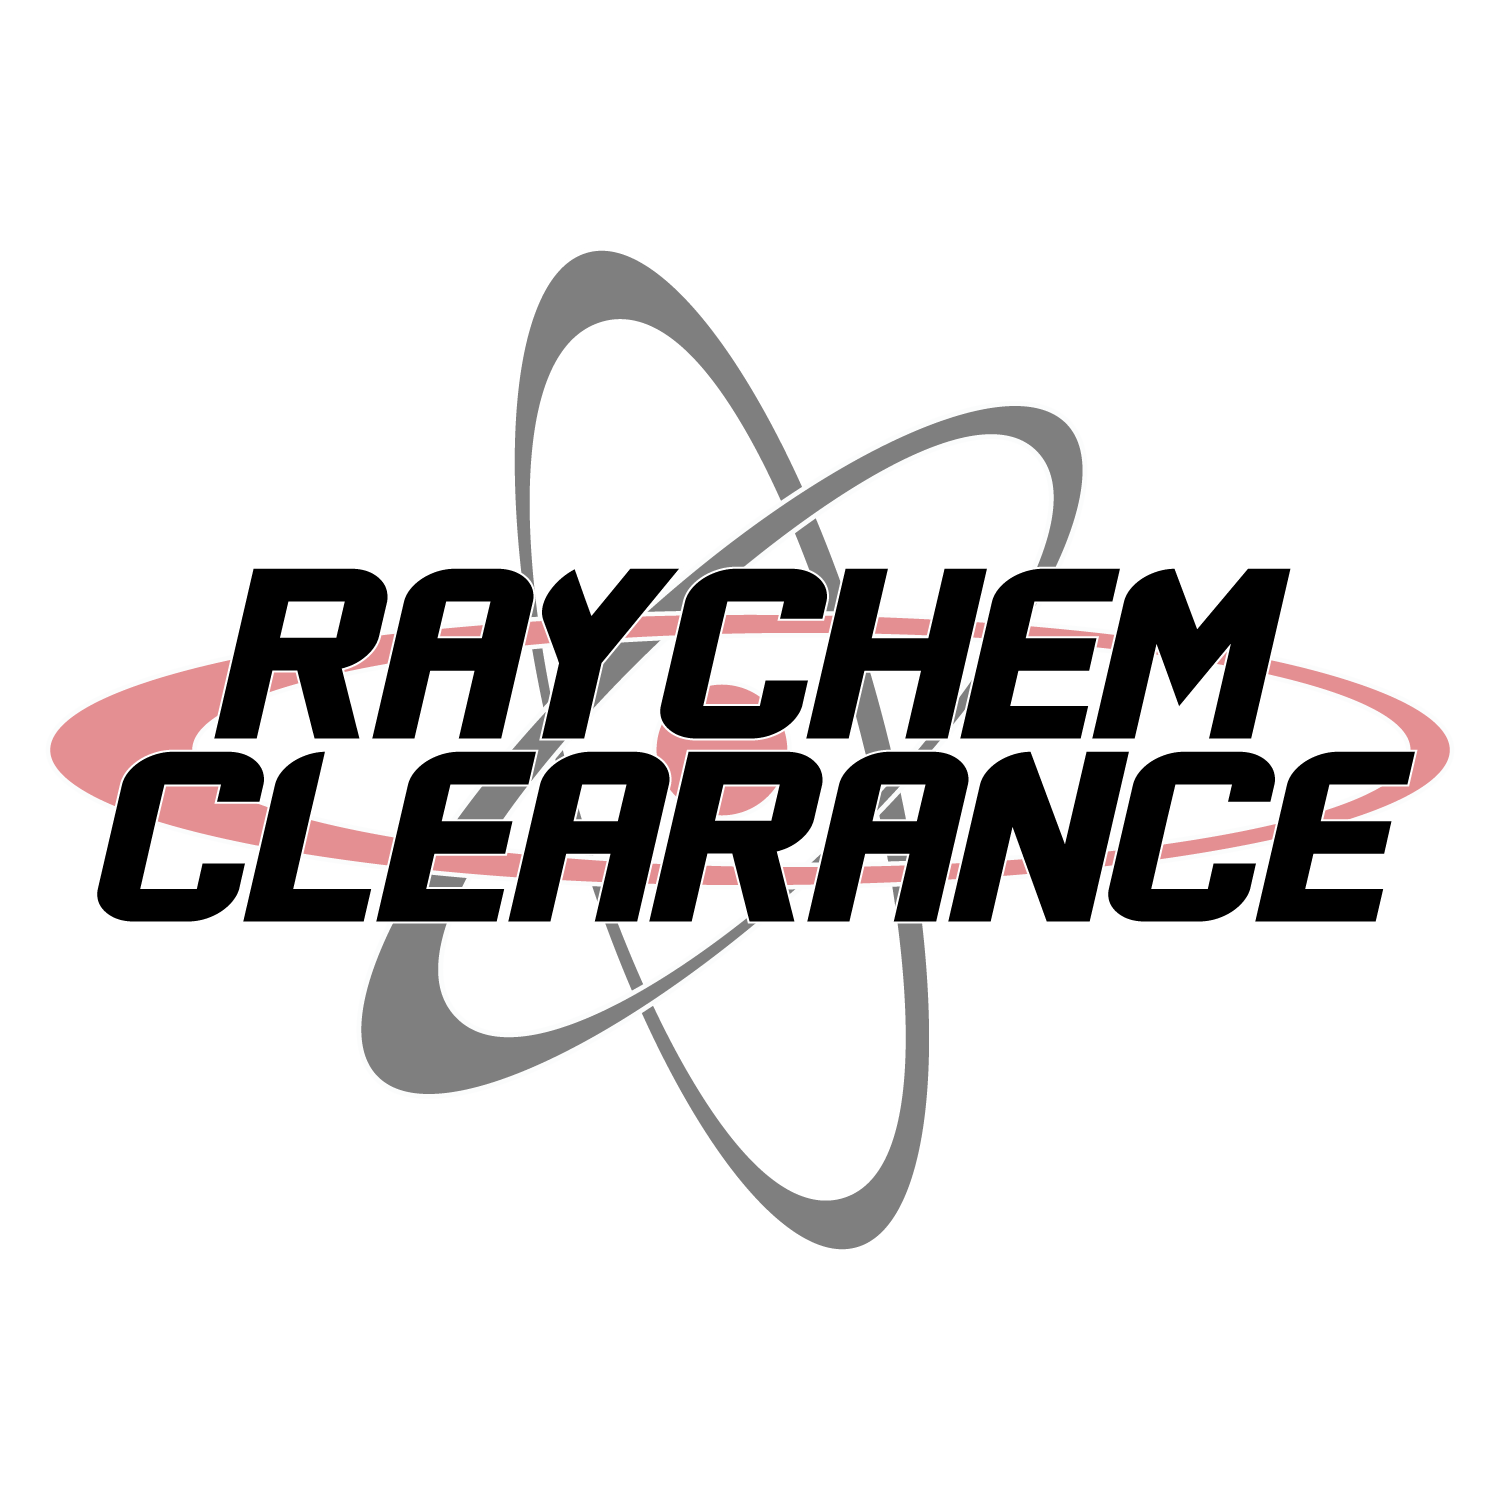 Loom Sheathing - CLEARANCE RAYCHEM DR-25 - VARIOUS SIZES